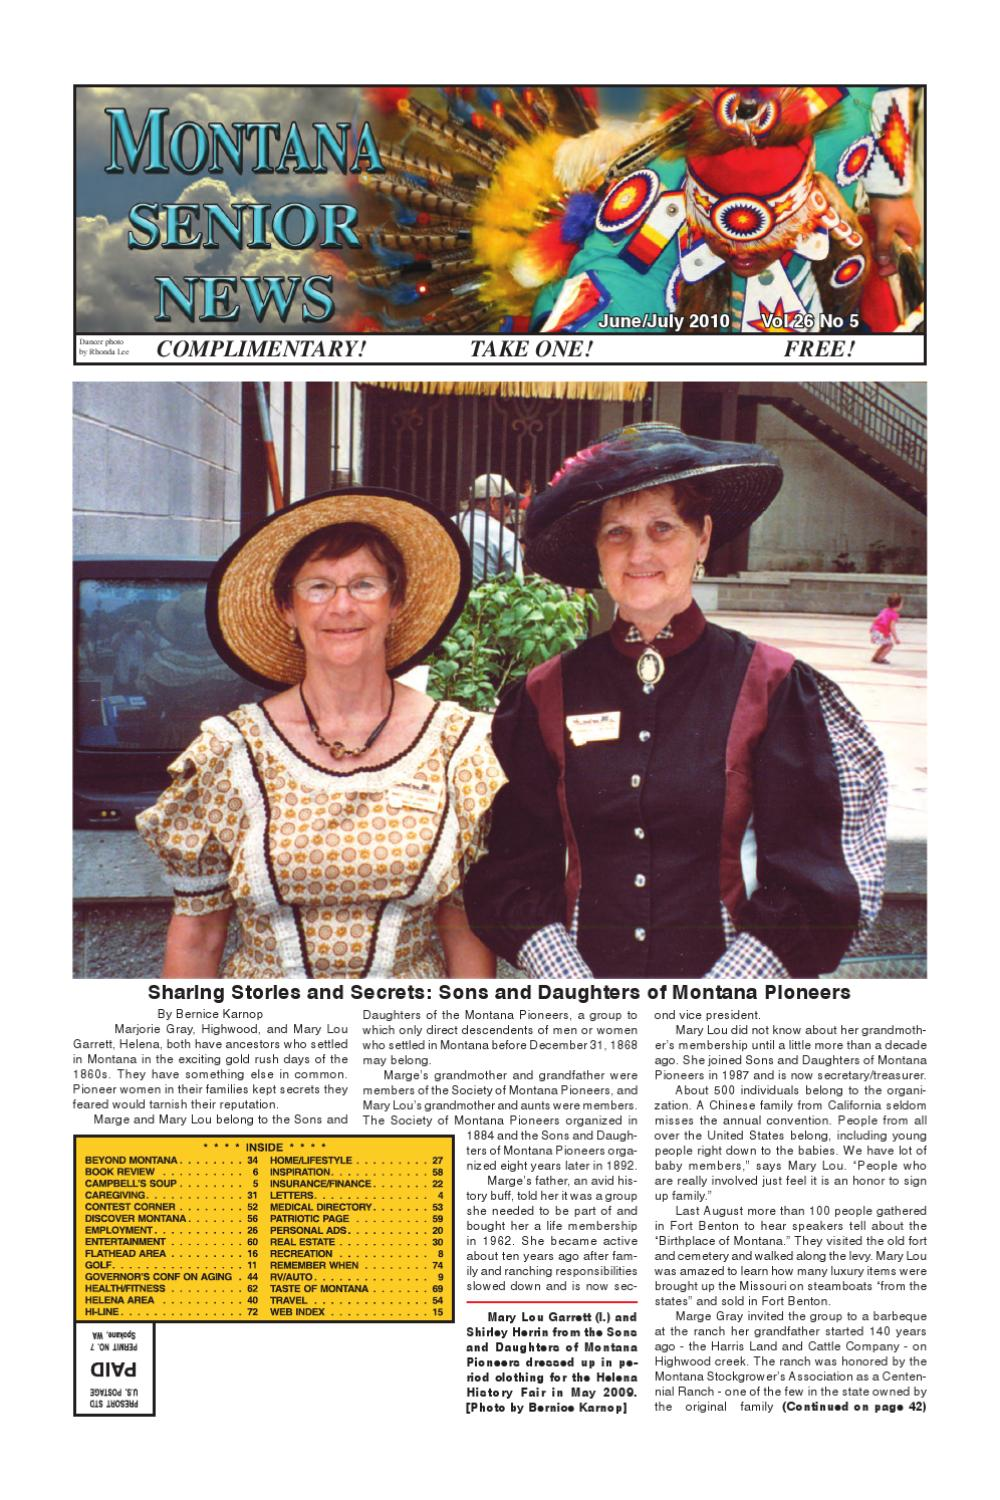 Montana Senior News June/July 2010 by Montana Senior News